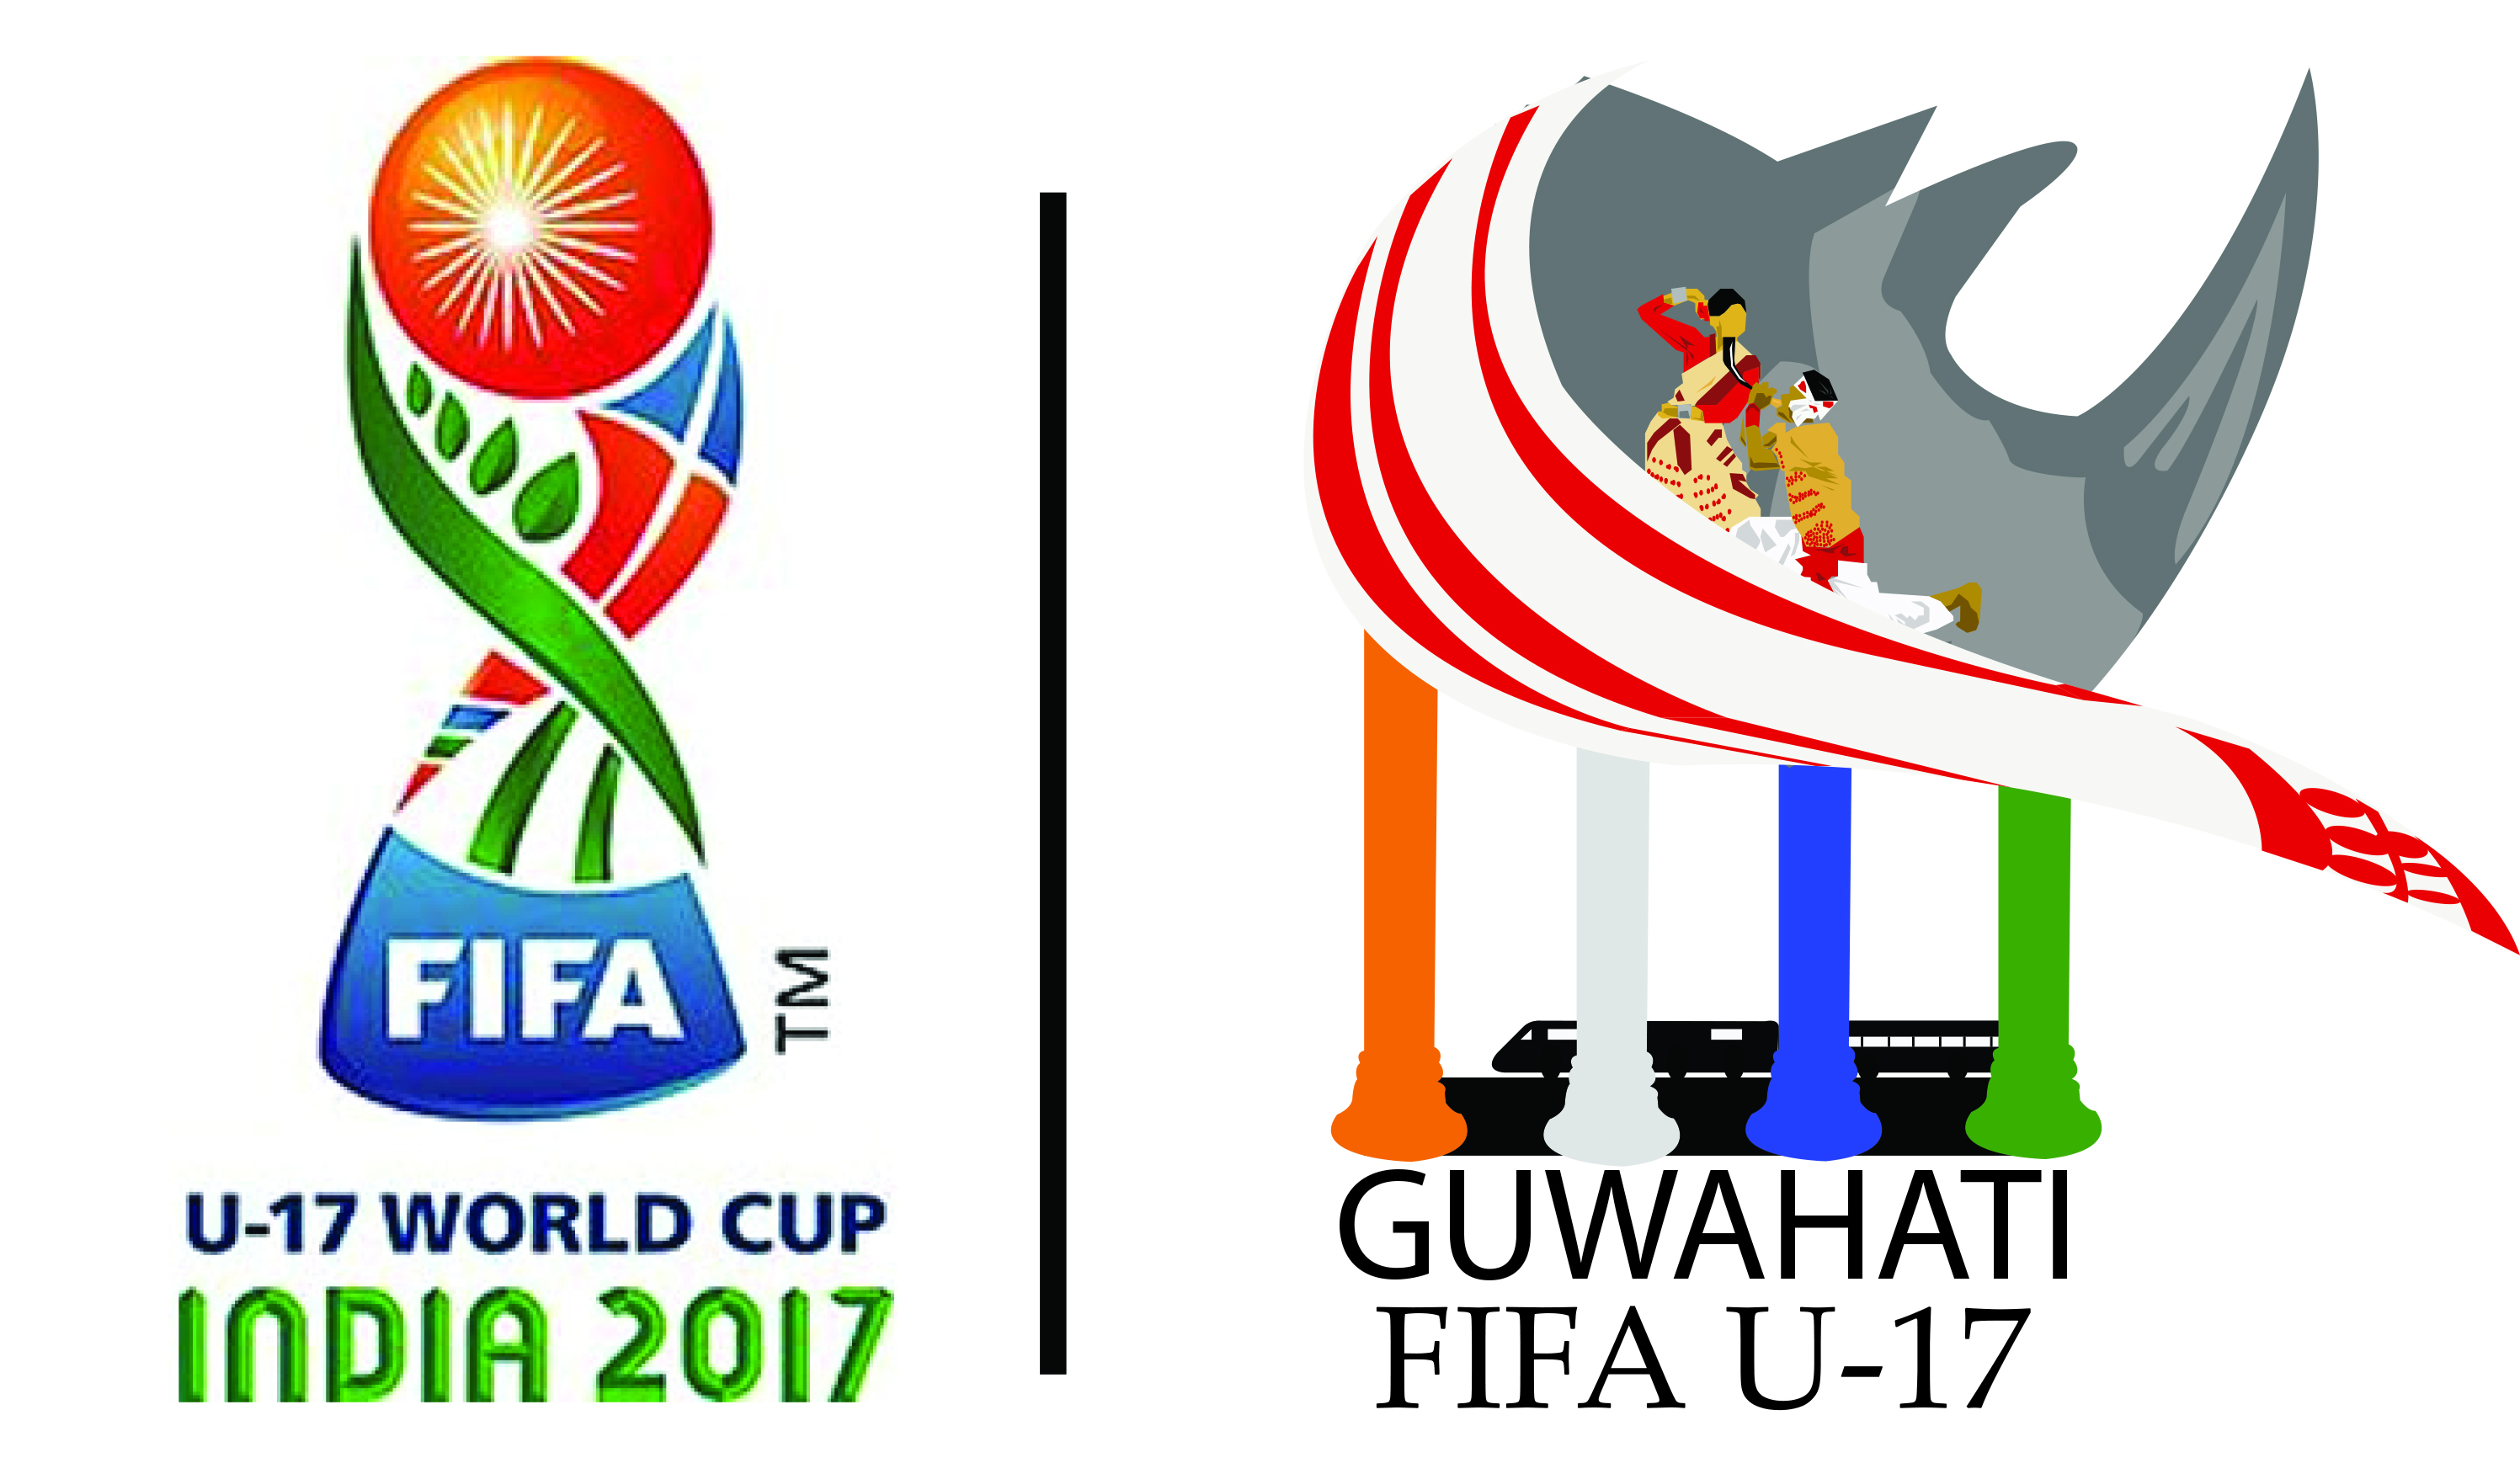 FIFA U-17 World Cup Host City Logo Design Contest | Assam ...